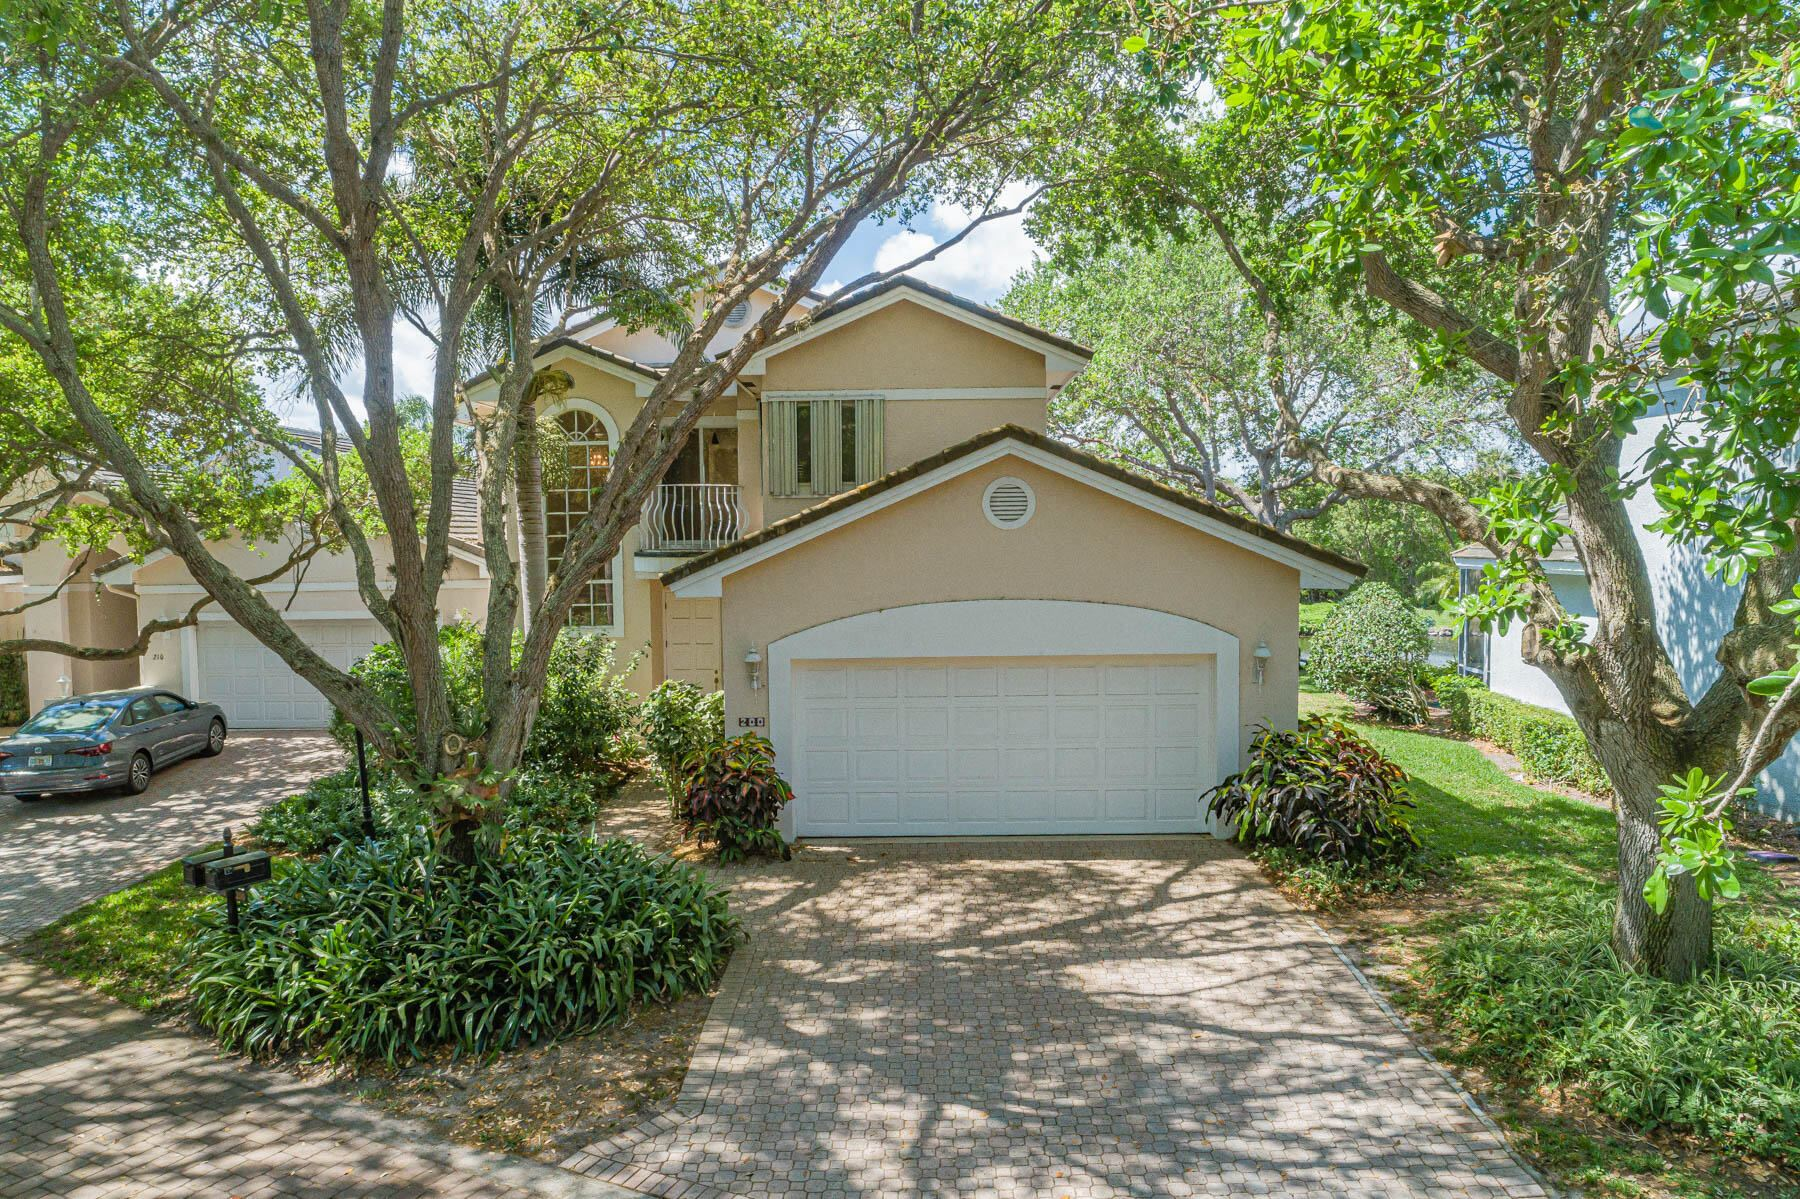 200 S Peppertree Drive, Vero Beach, FL 32963 - #: RX-10700484